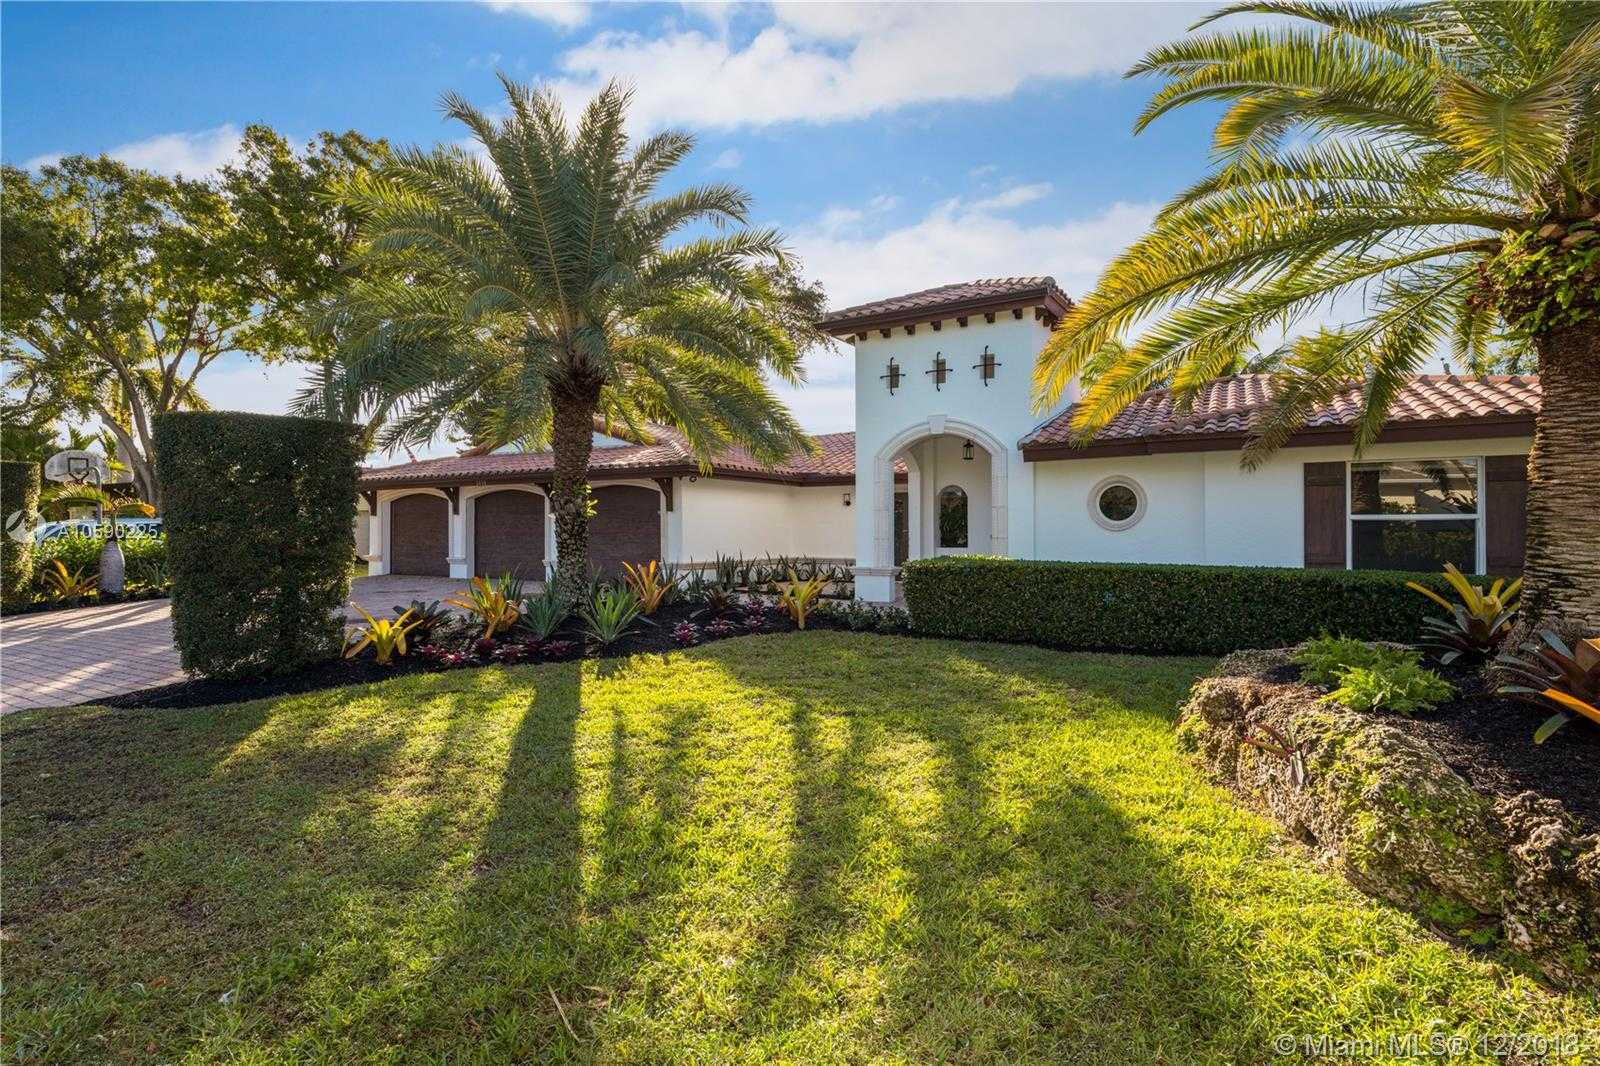 $1,248,000 - 5Br/5Ba -  for Sale in Coral Ridge Country Club, Fort Lauderdale